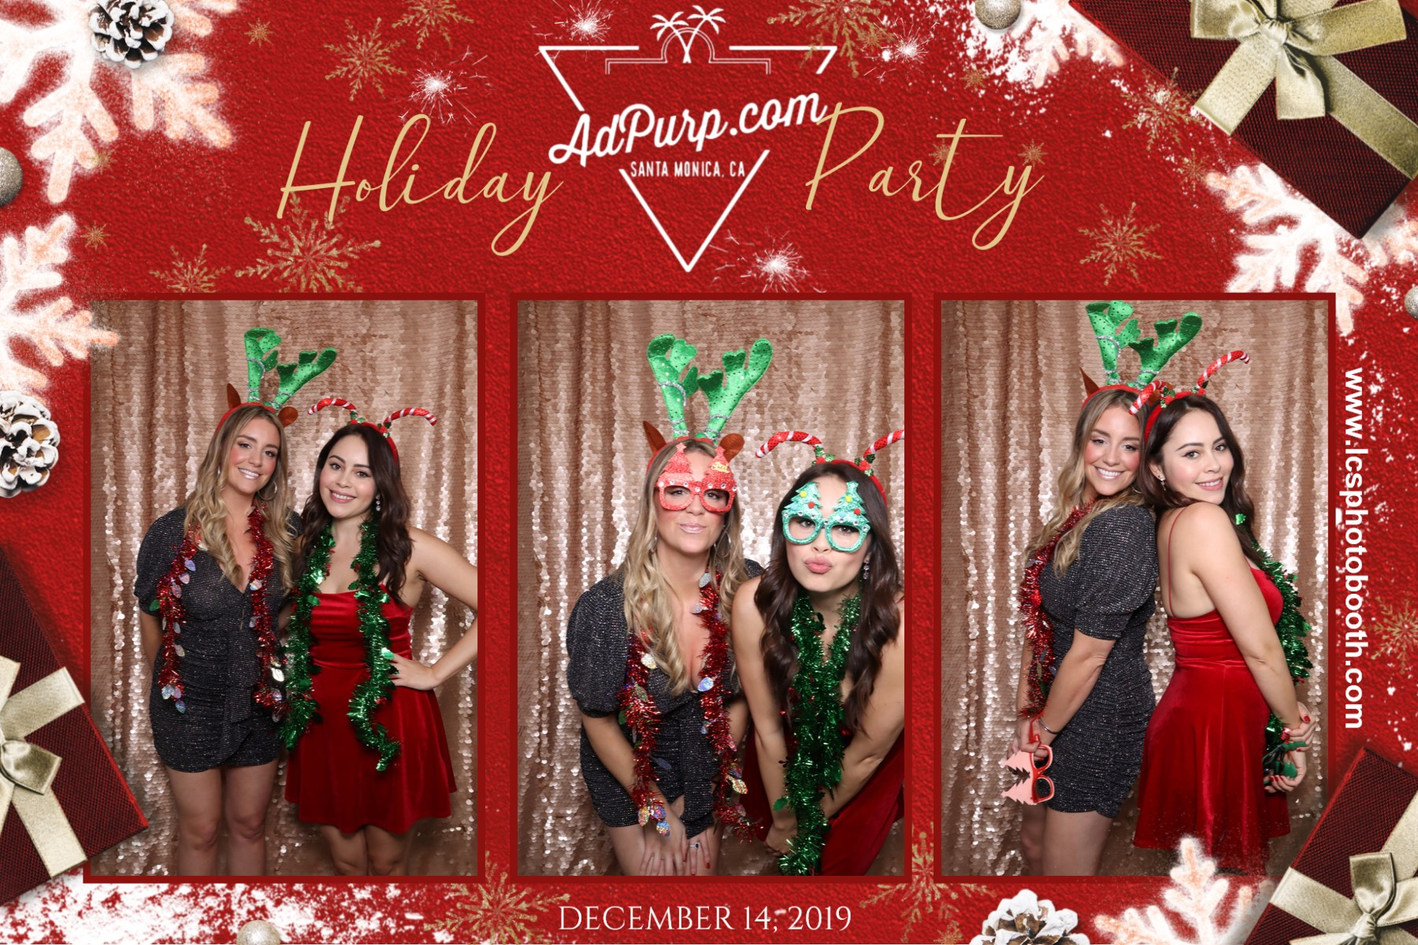 Holiday Party Hollywood, Ca